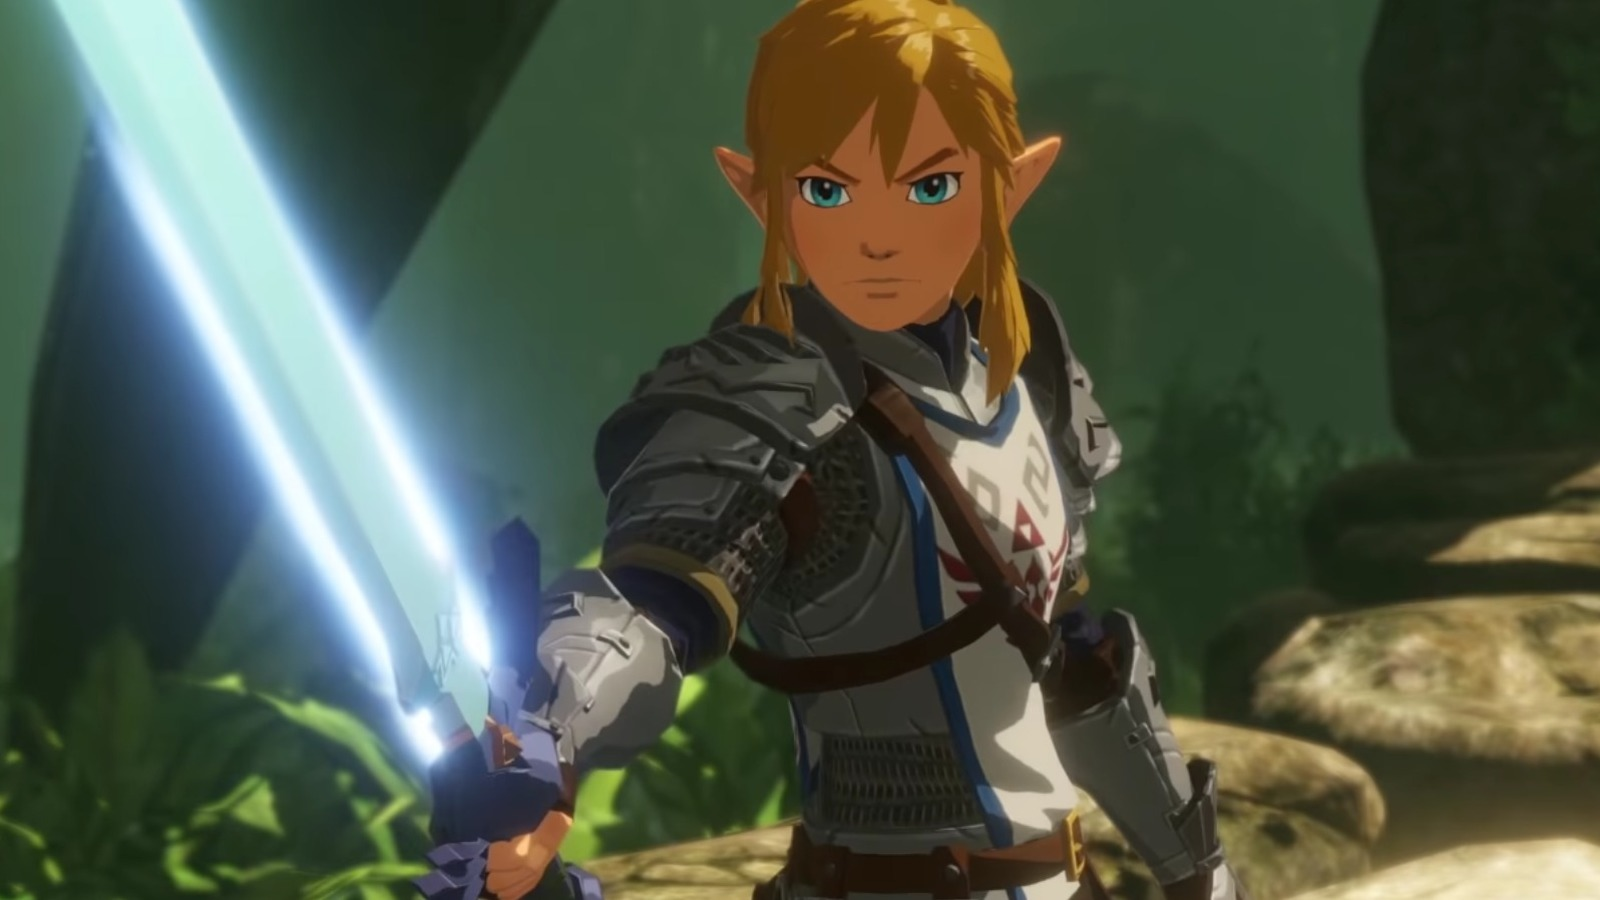 These Are The Best Weapons For Link In Age Of Calamity